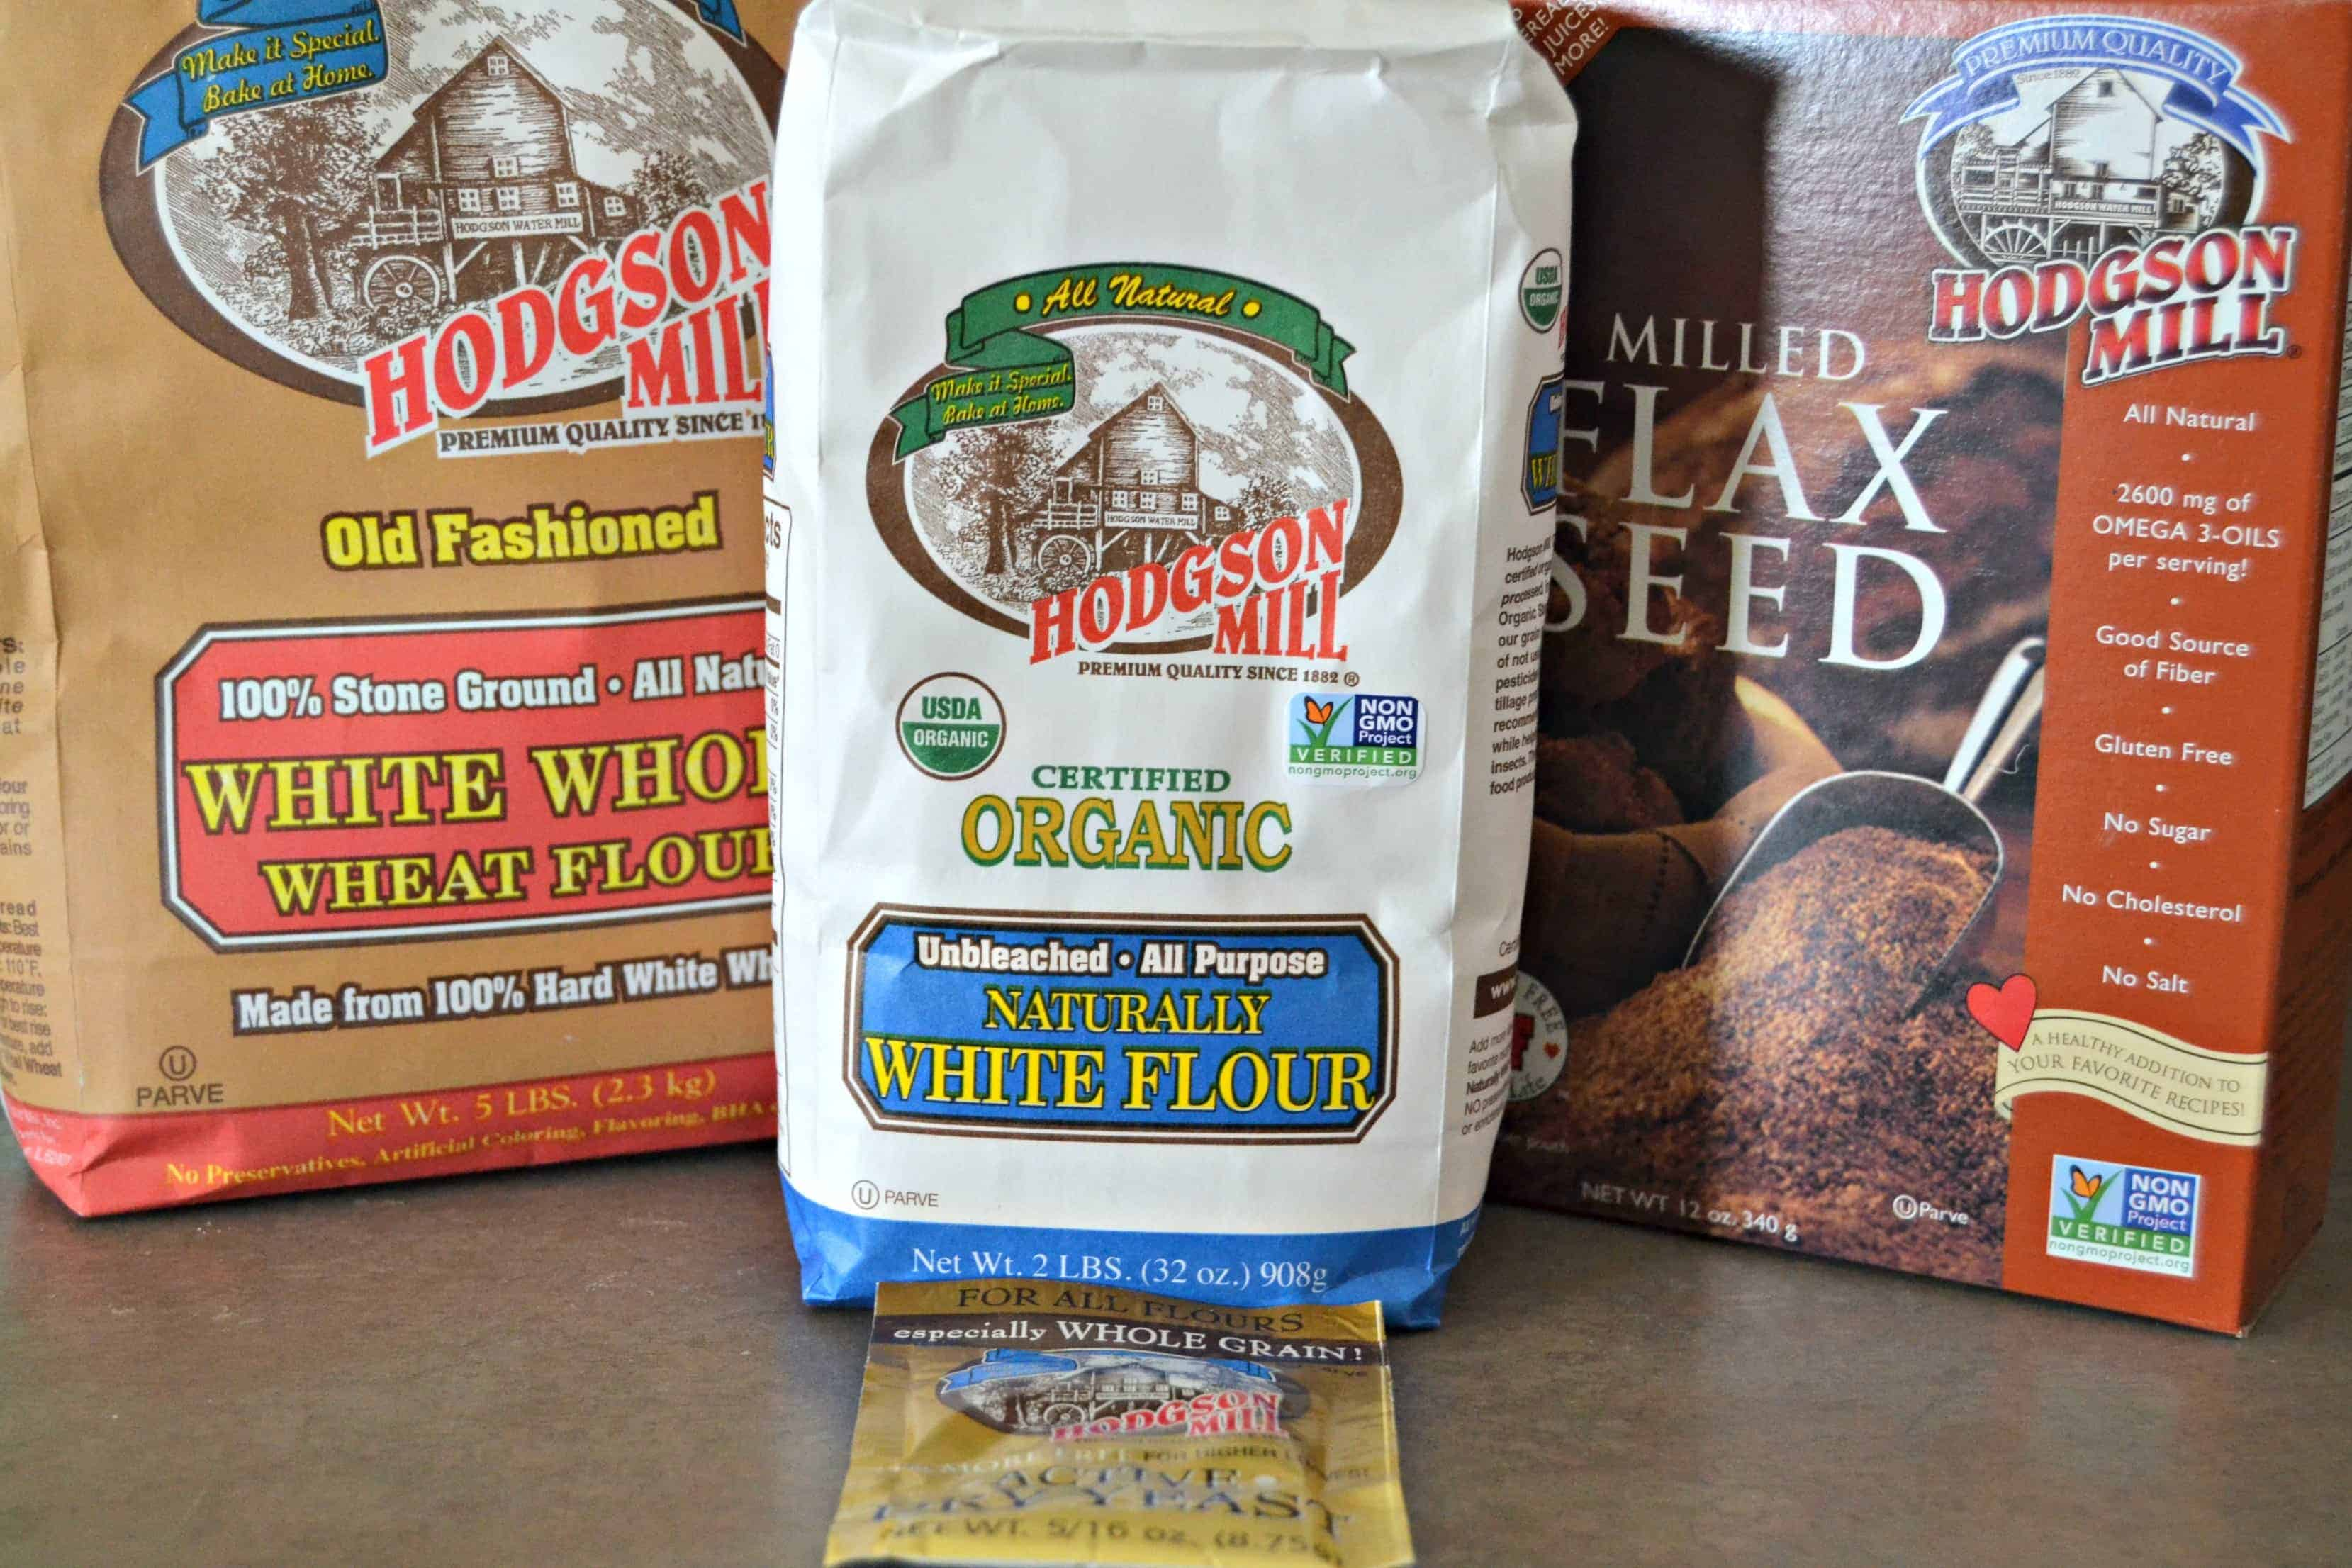 Hodgson Mill products